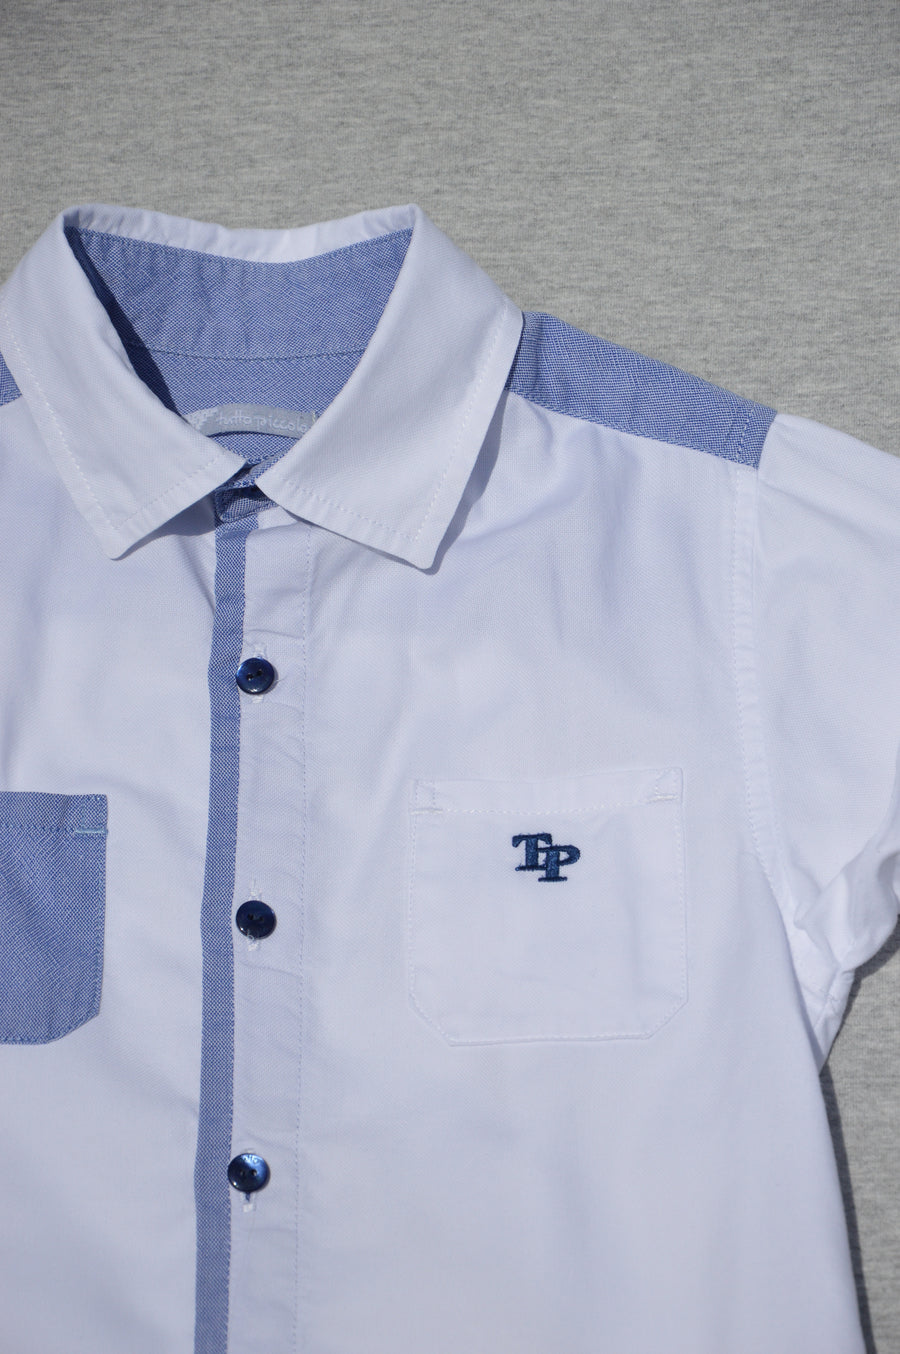 Tutto Piccolo - nearly new - smart, white shirt, size 4